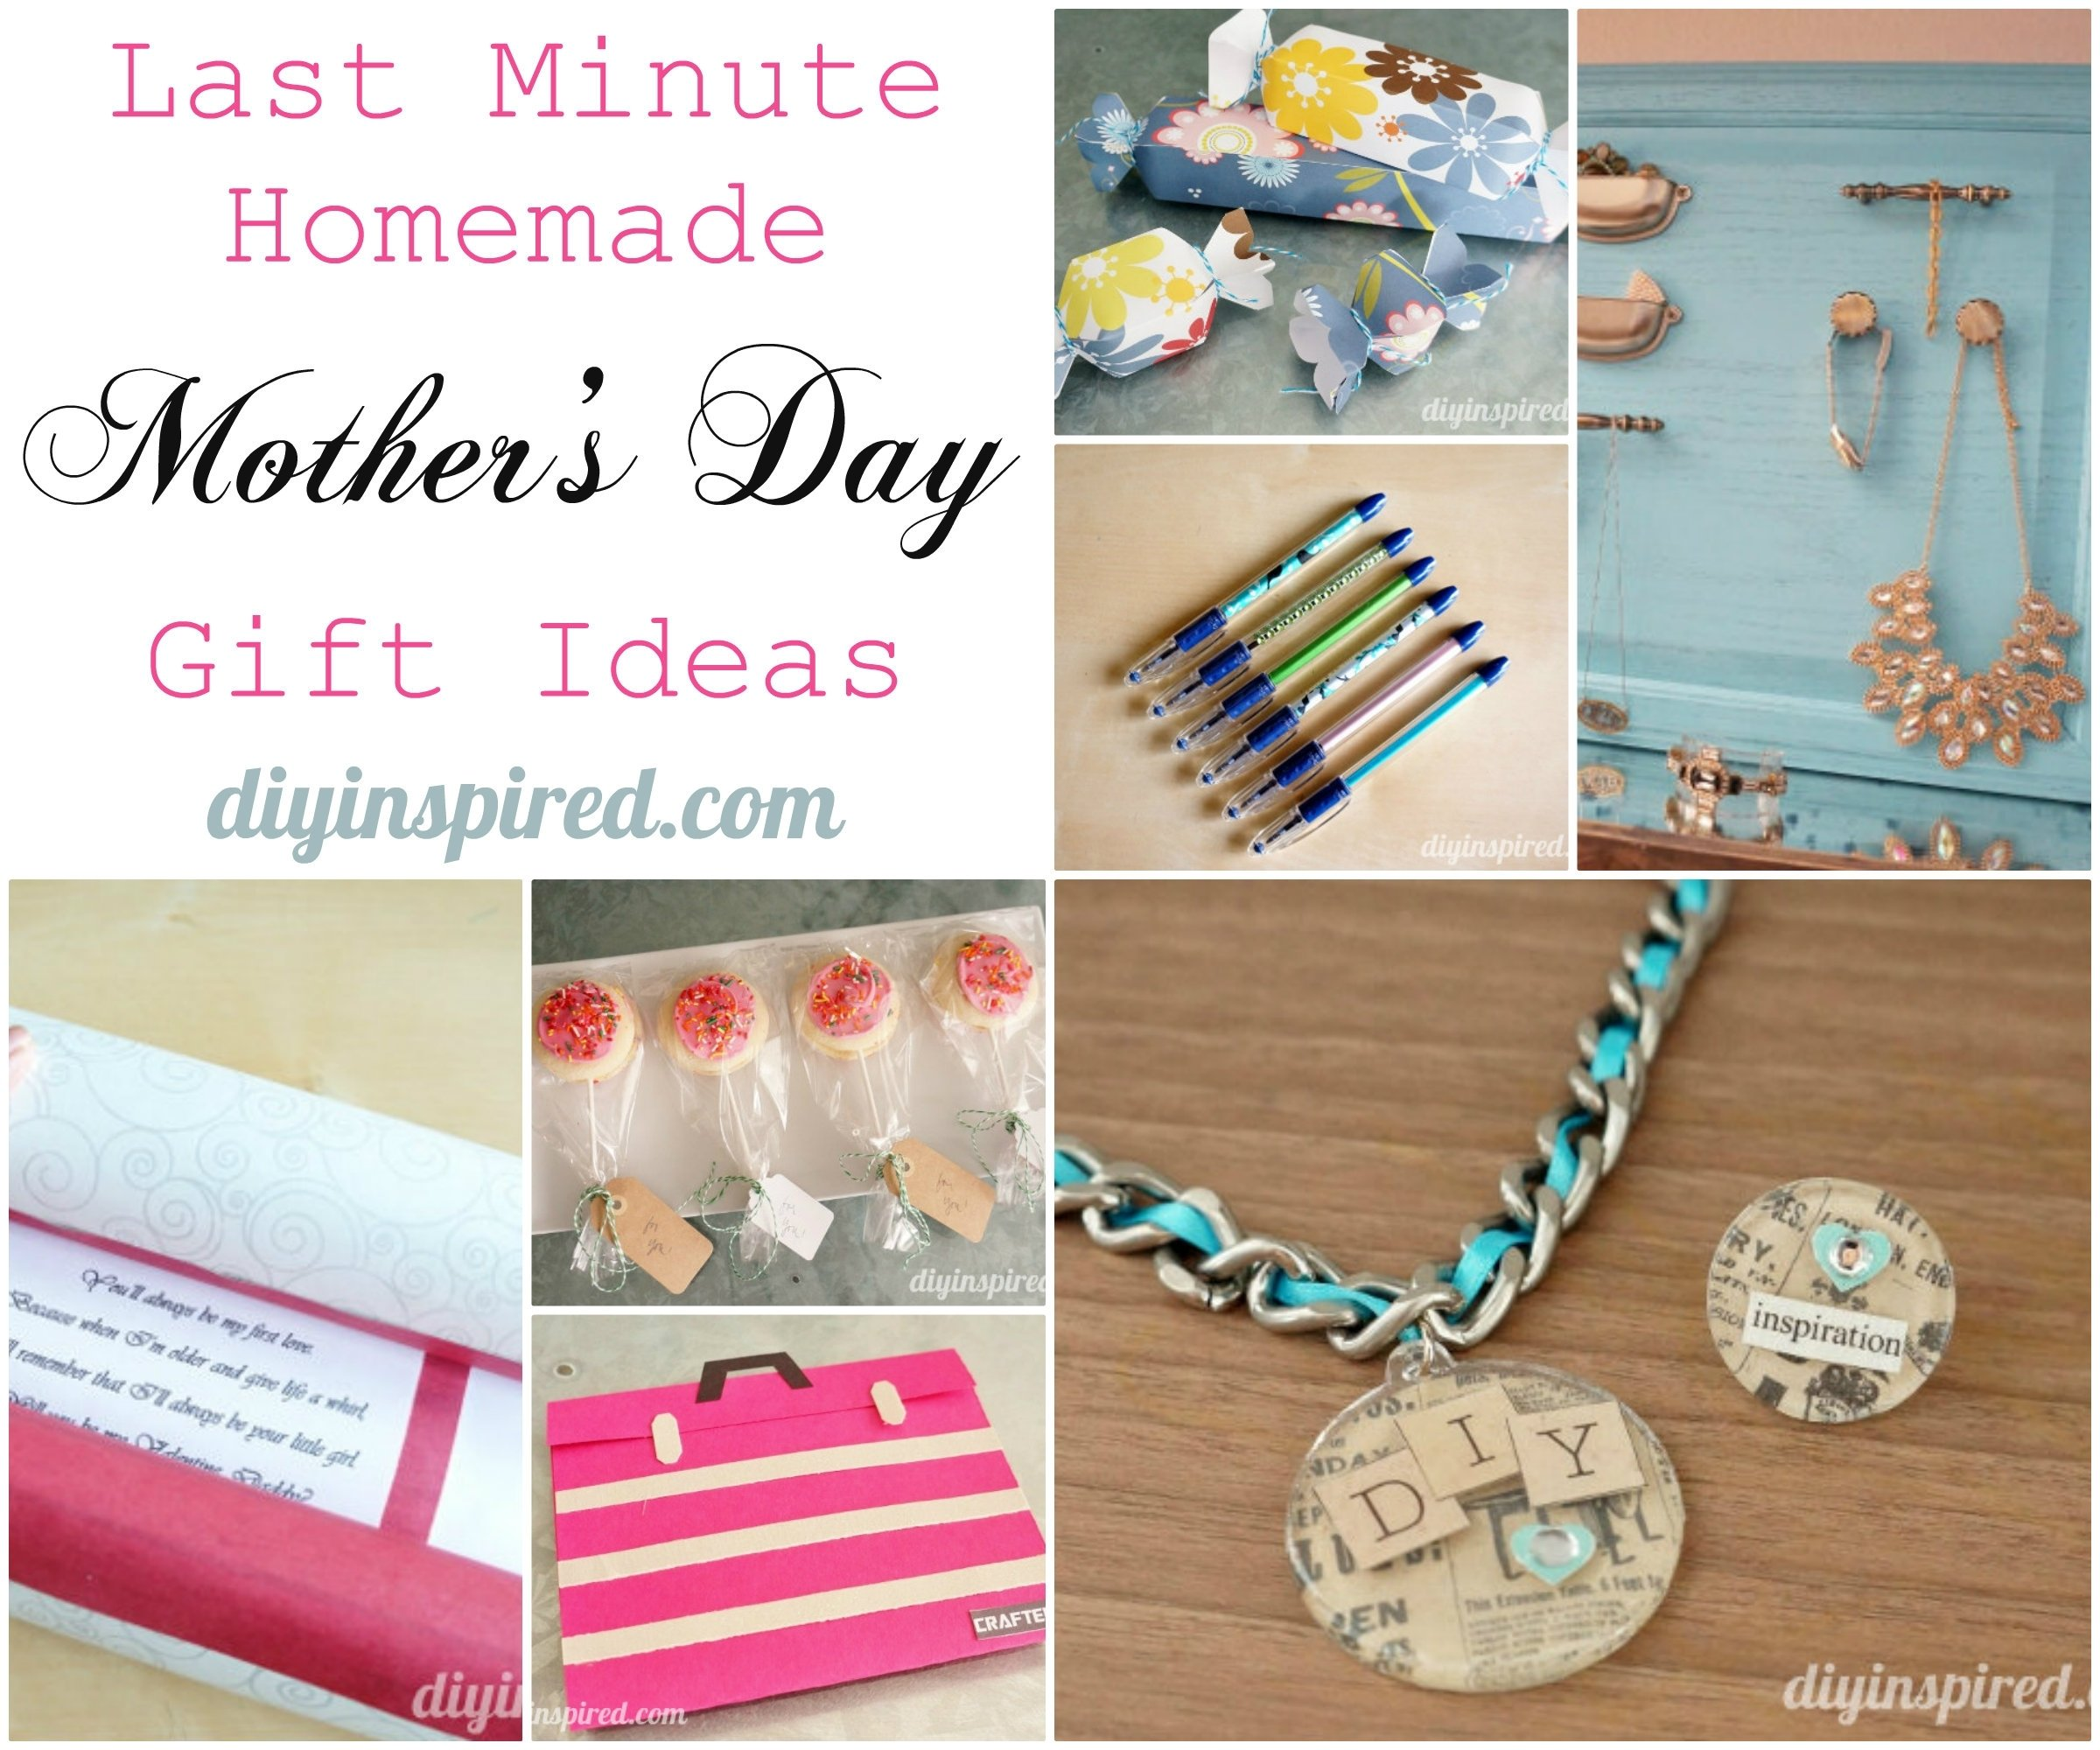 last minute homemade mother's day gift ideas - diy inspired